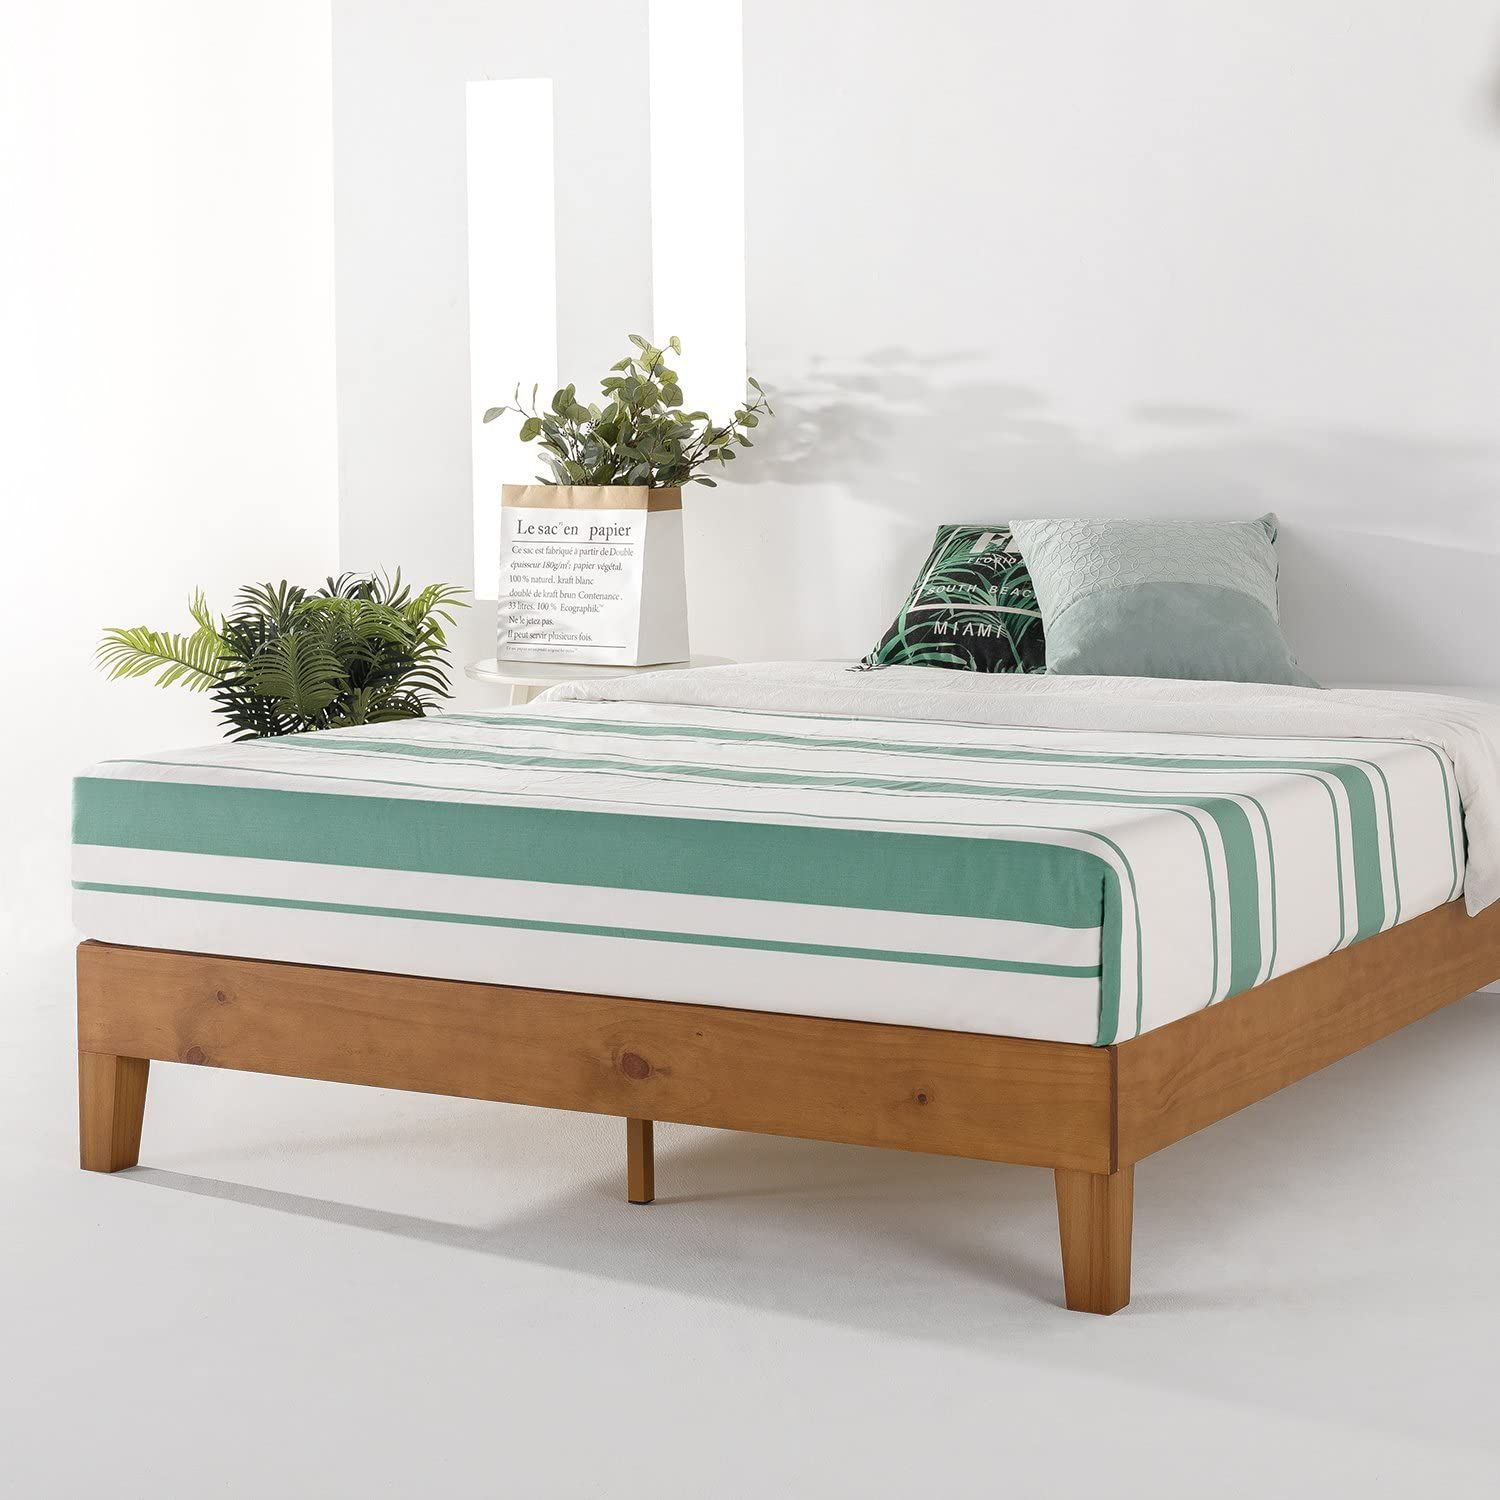 Mellow Naturalista Grand 12 Inch Solid Wood Platform Bed With Wooden Slats No Box Spring In 2020 Wood Platform Bed Frame Platform Bed Frame Solid Wood Platform Bed